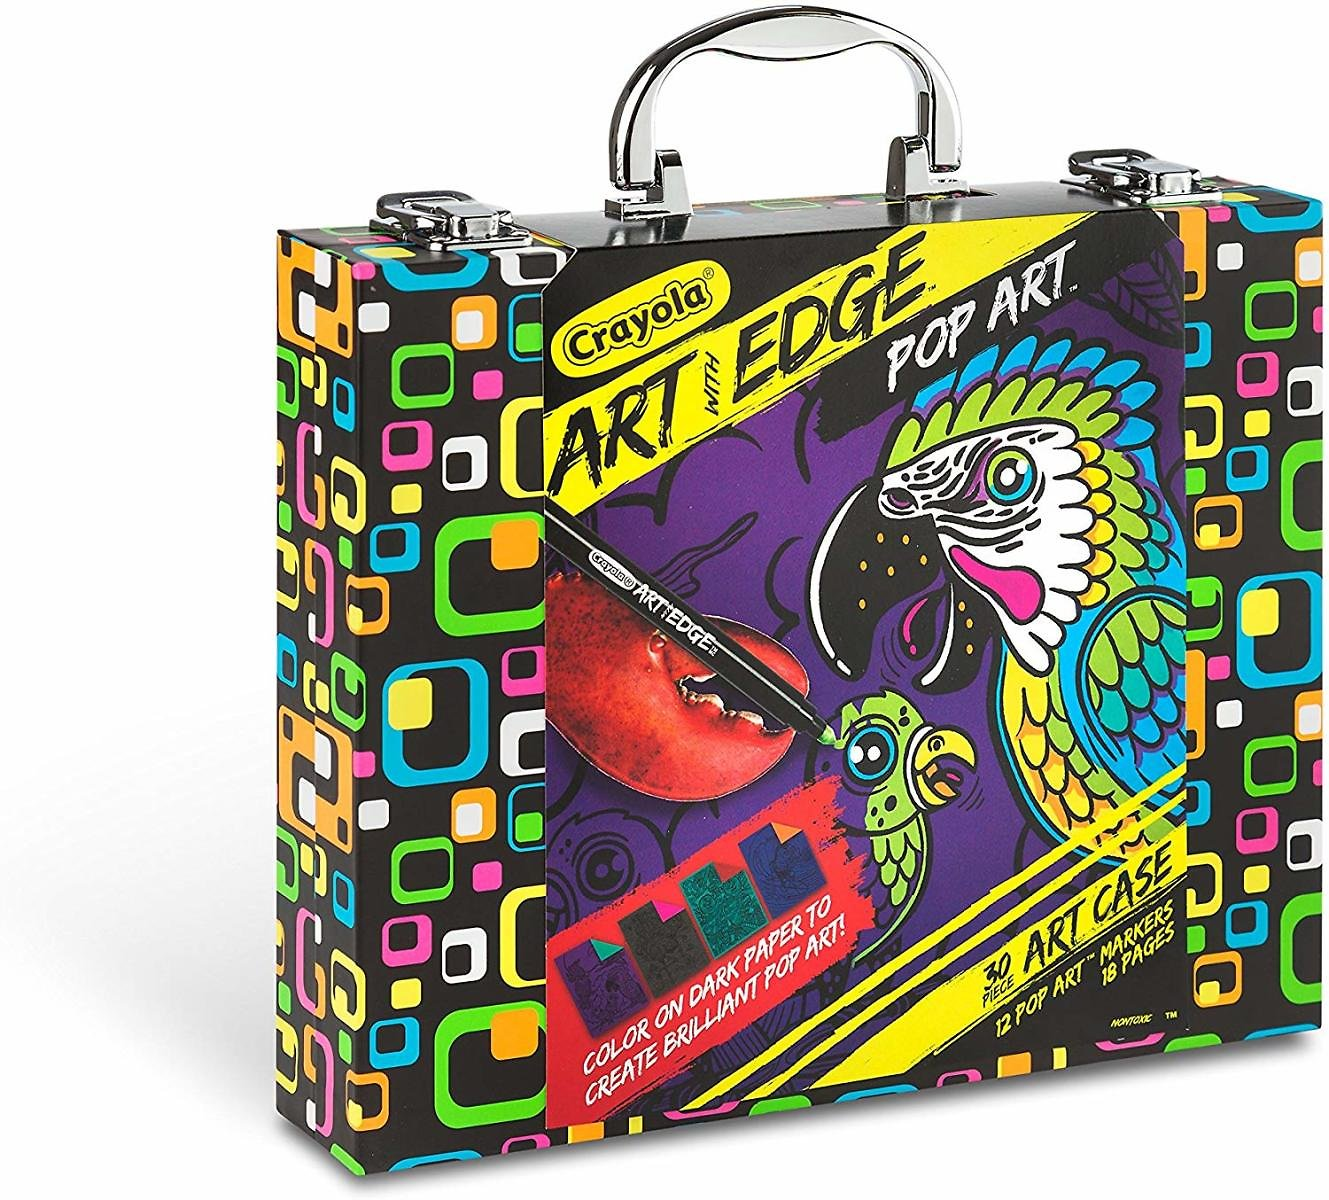 Crayola Art with Edge, Neon Marker and Art Case Set, Adult Coloring